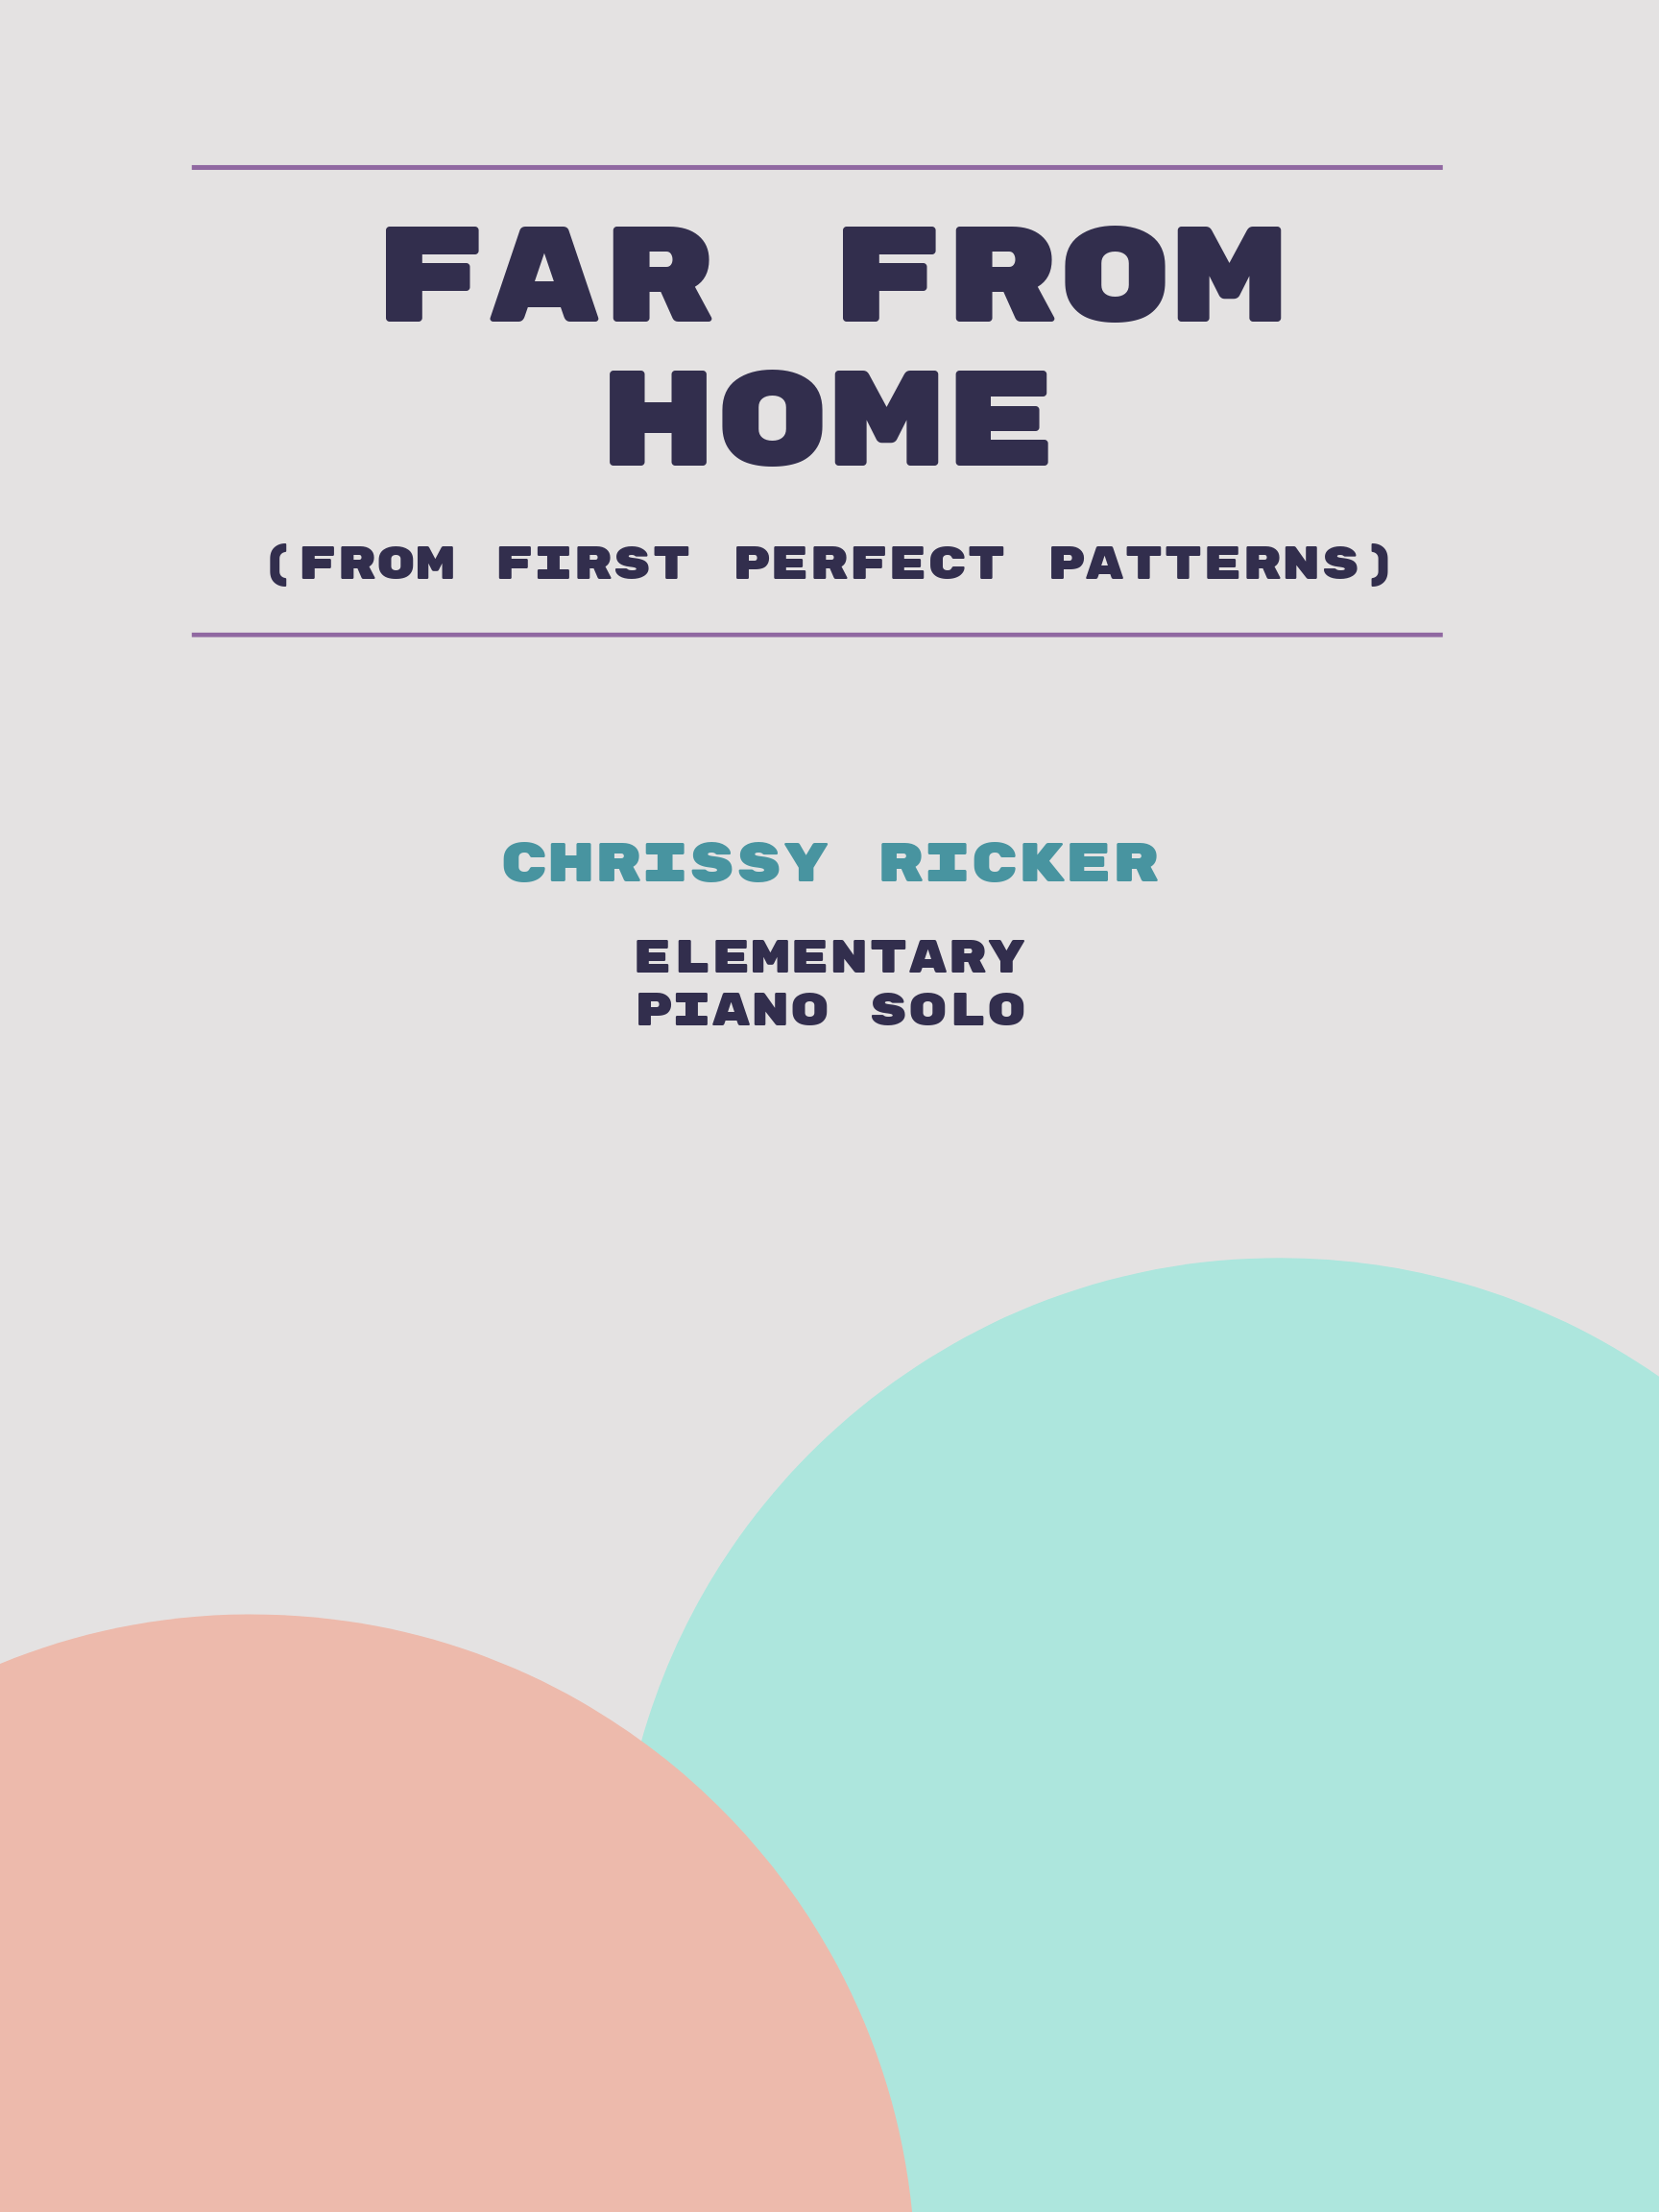 Far From Home by Chrissy Ricker